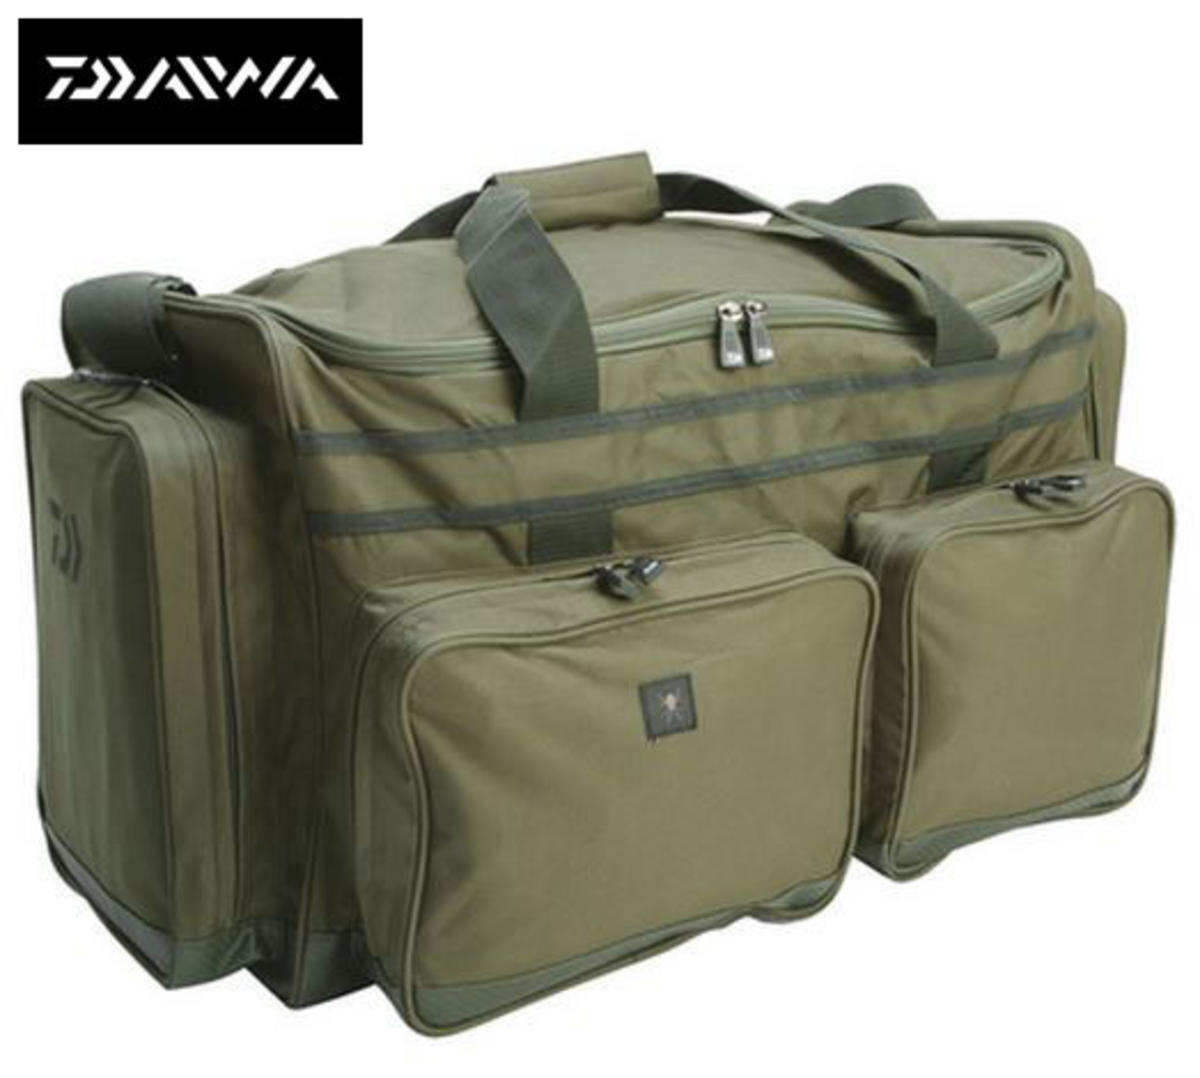 New Daiwa Black Widow 70 ltr Fishing Carryall / Bag - Model No. BWC70L